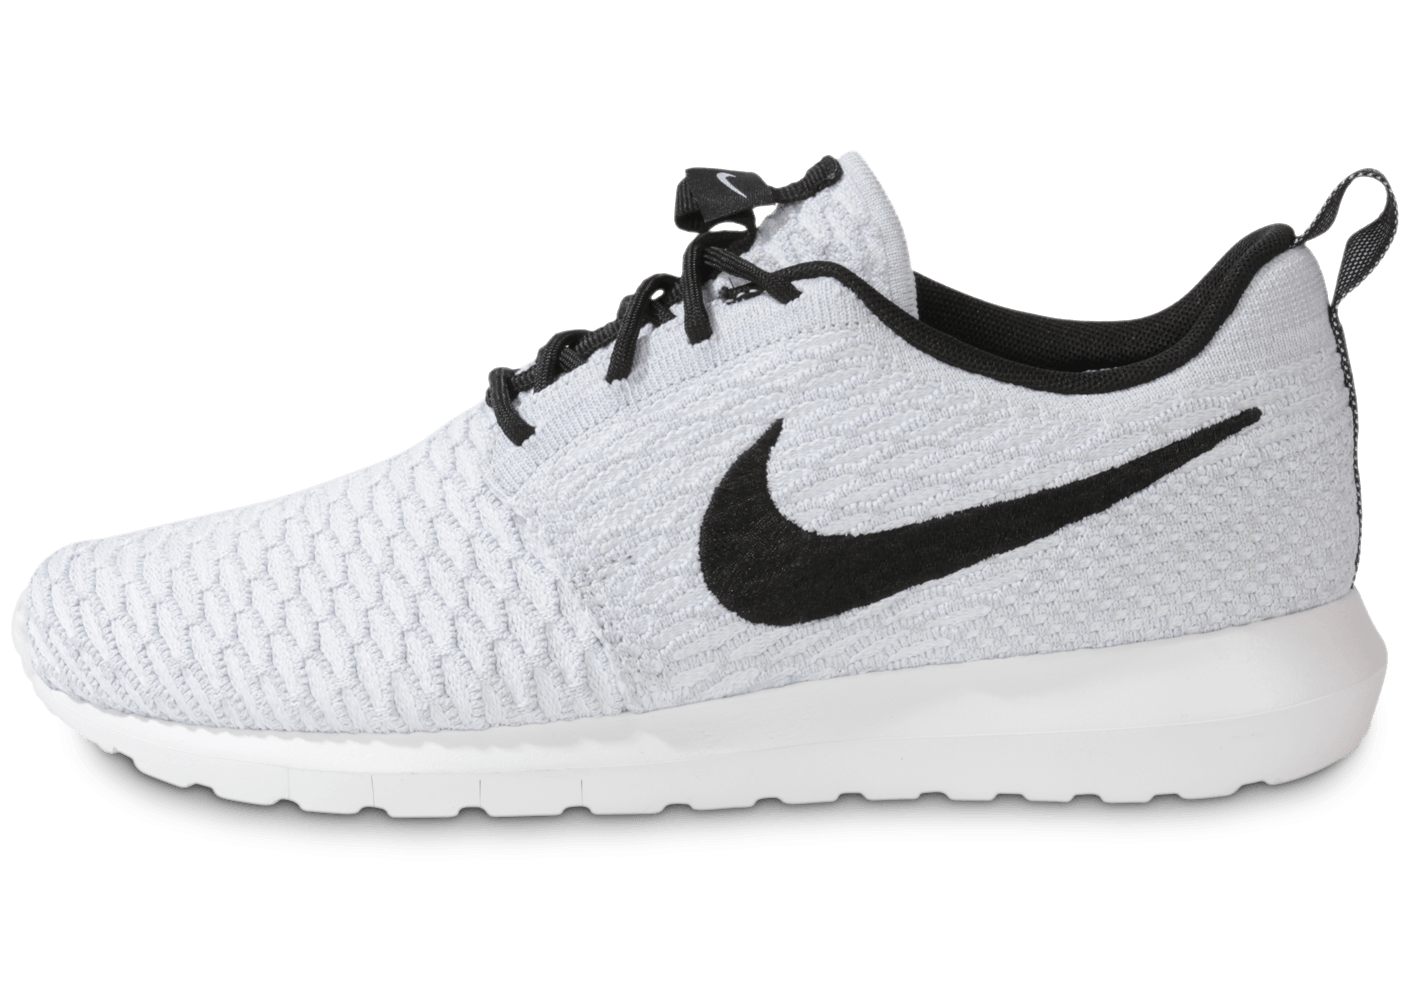 check out 2ffc9 7ec1d wholesale 1056 chaussures nike roshe run flyknit blanche vue exterieure 2  c9a35 6333f